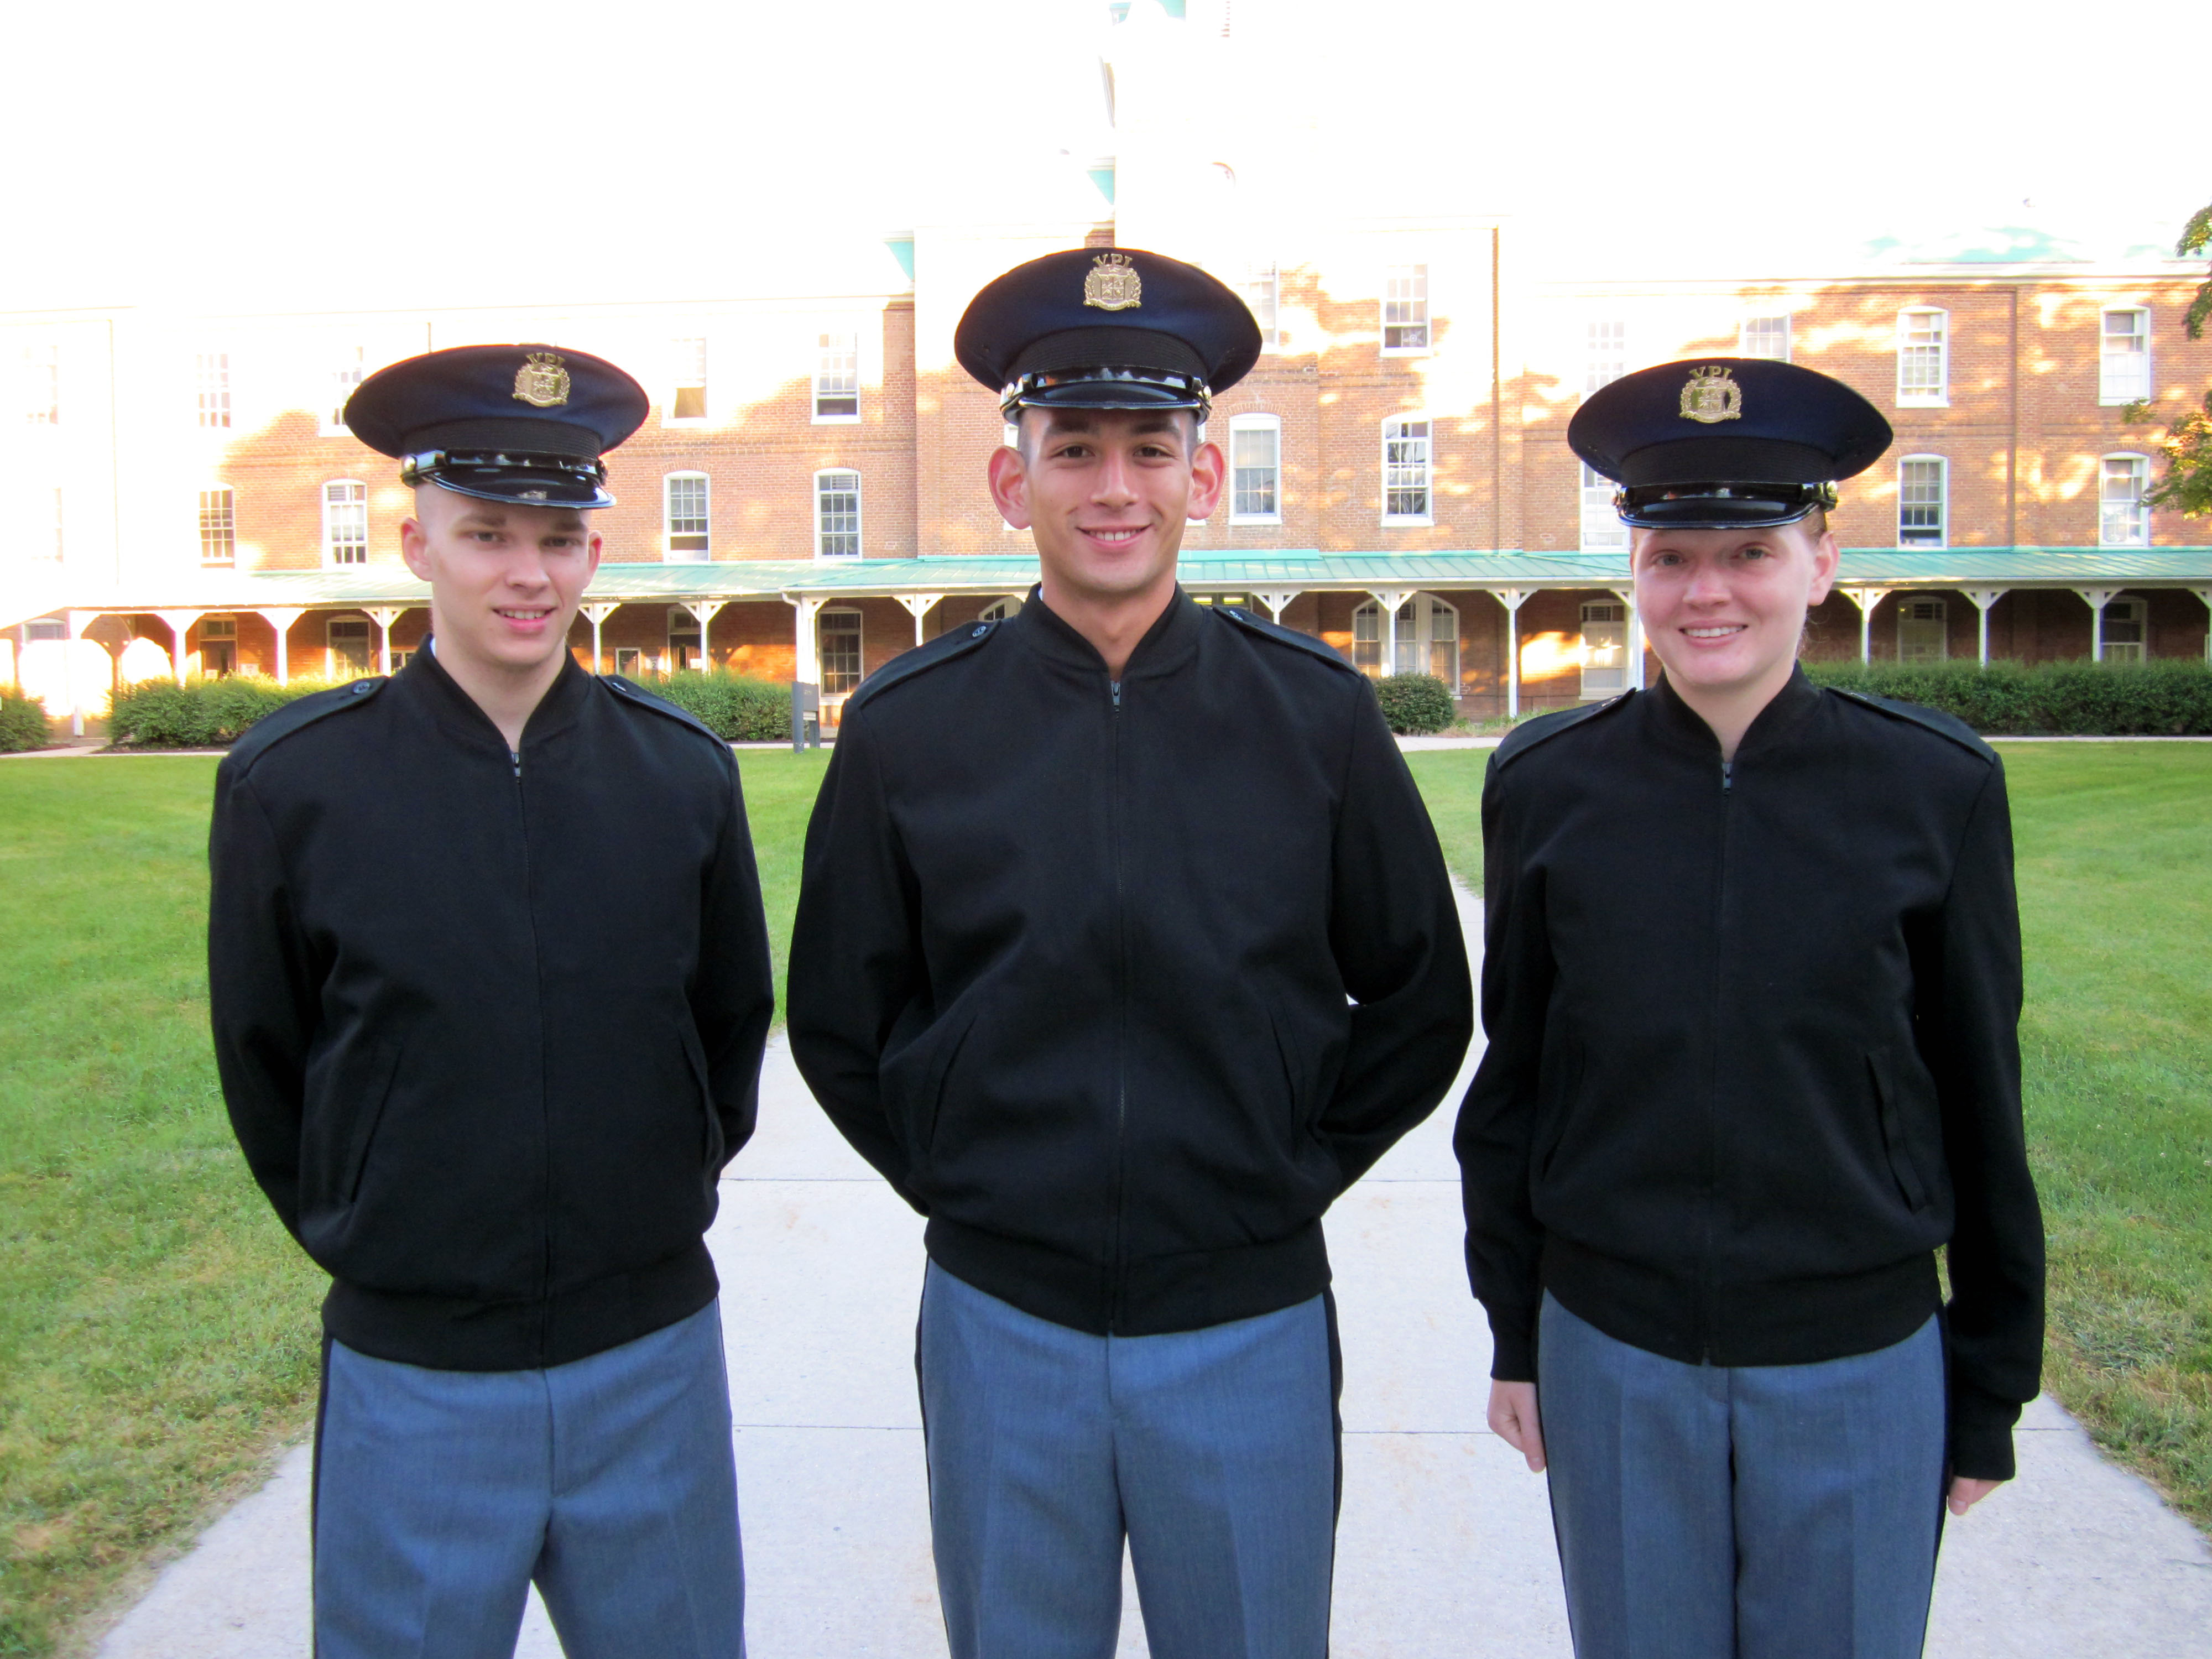 From left to right are Cadets Matthew Hitchcock, Scott Phelps, and Megan Burton